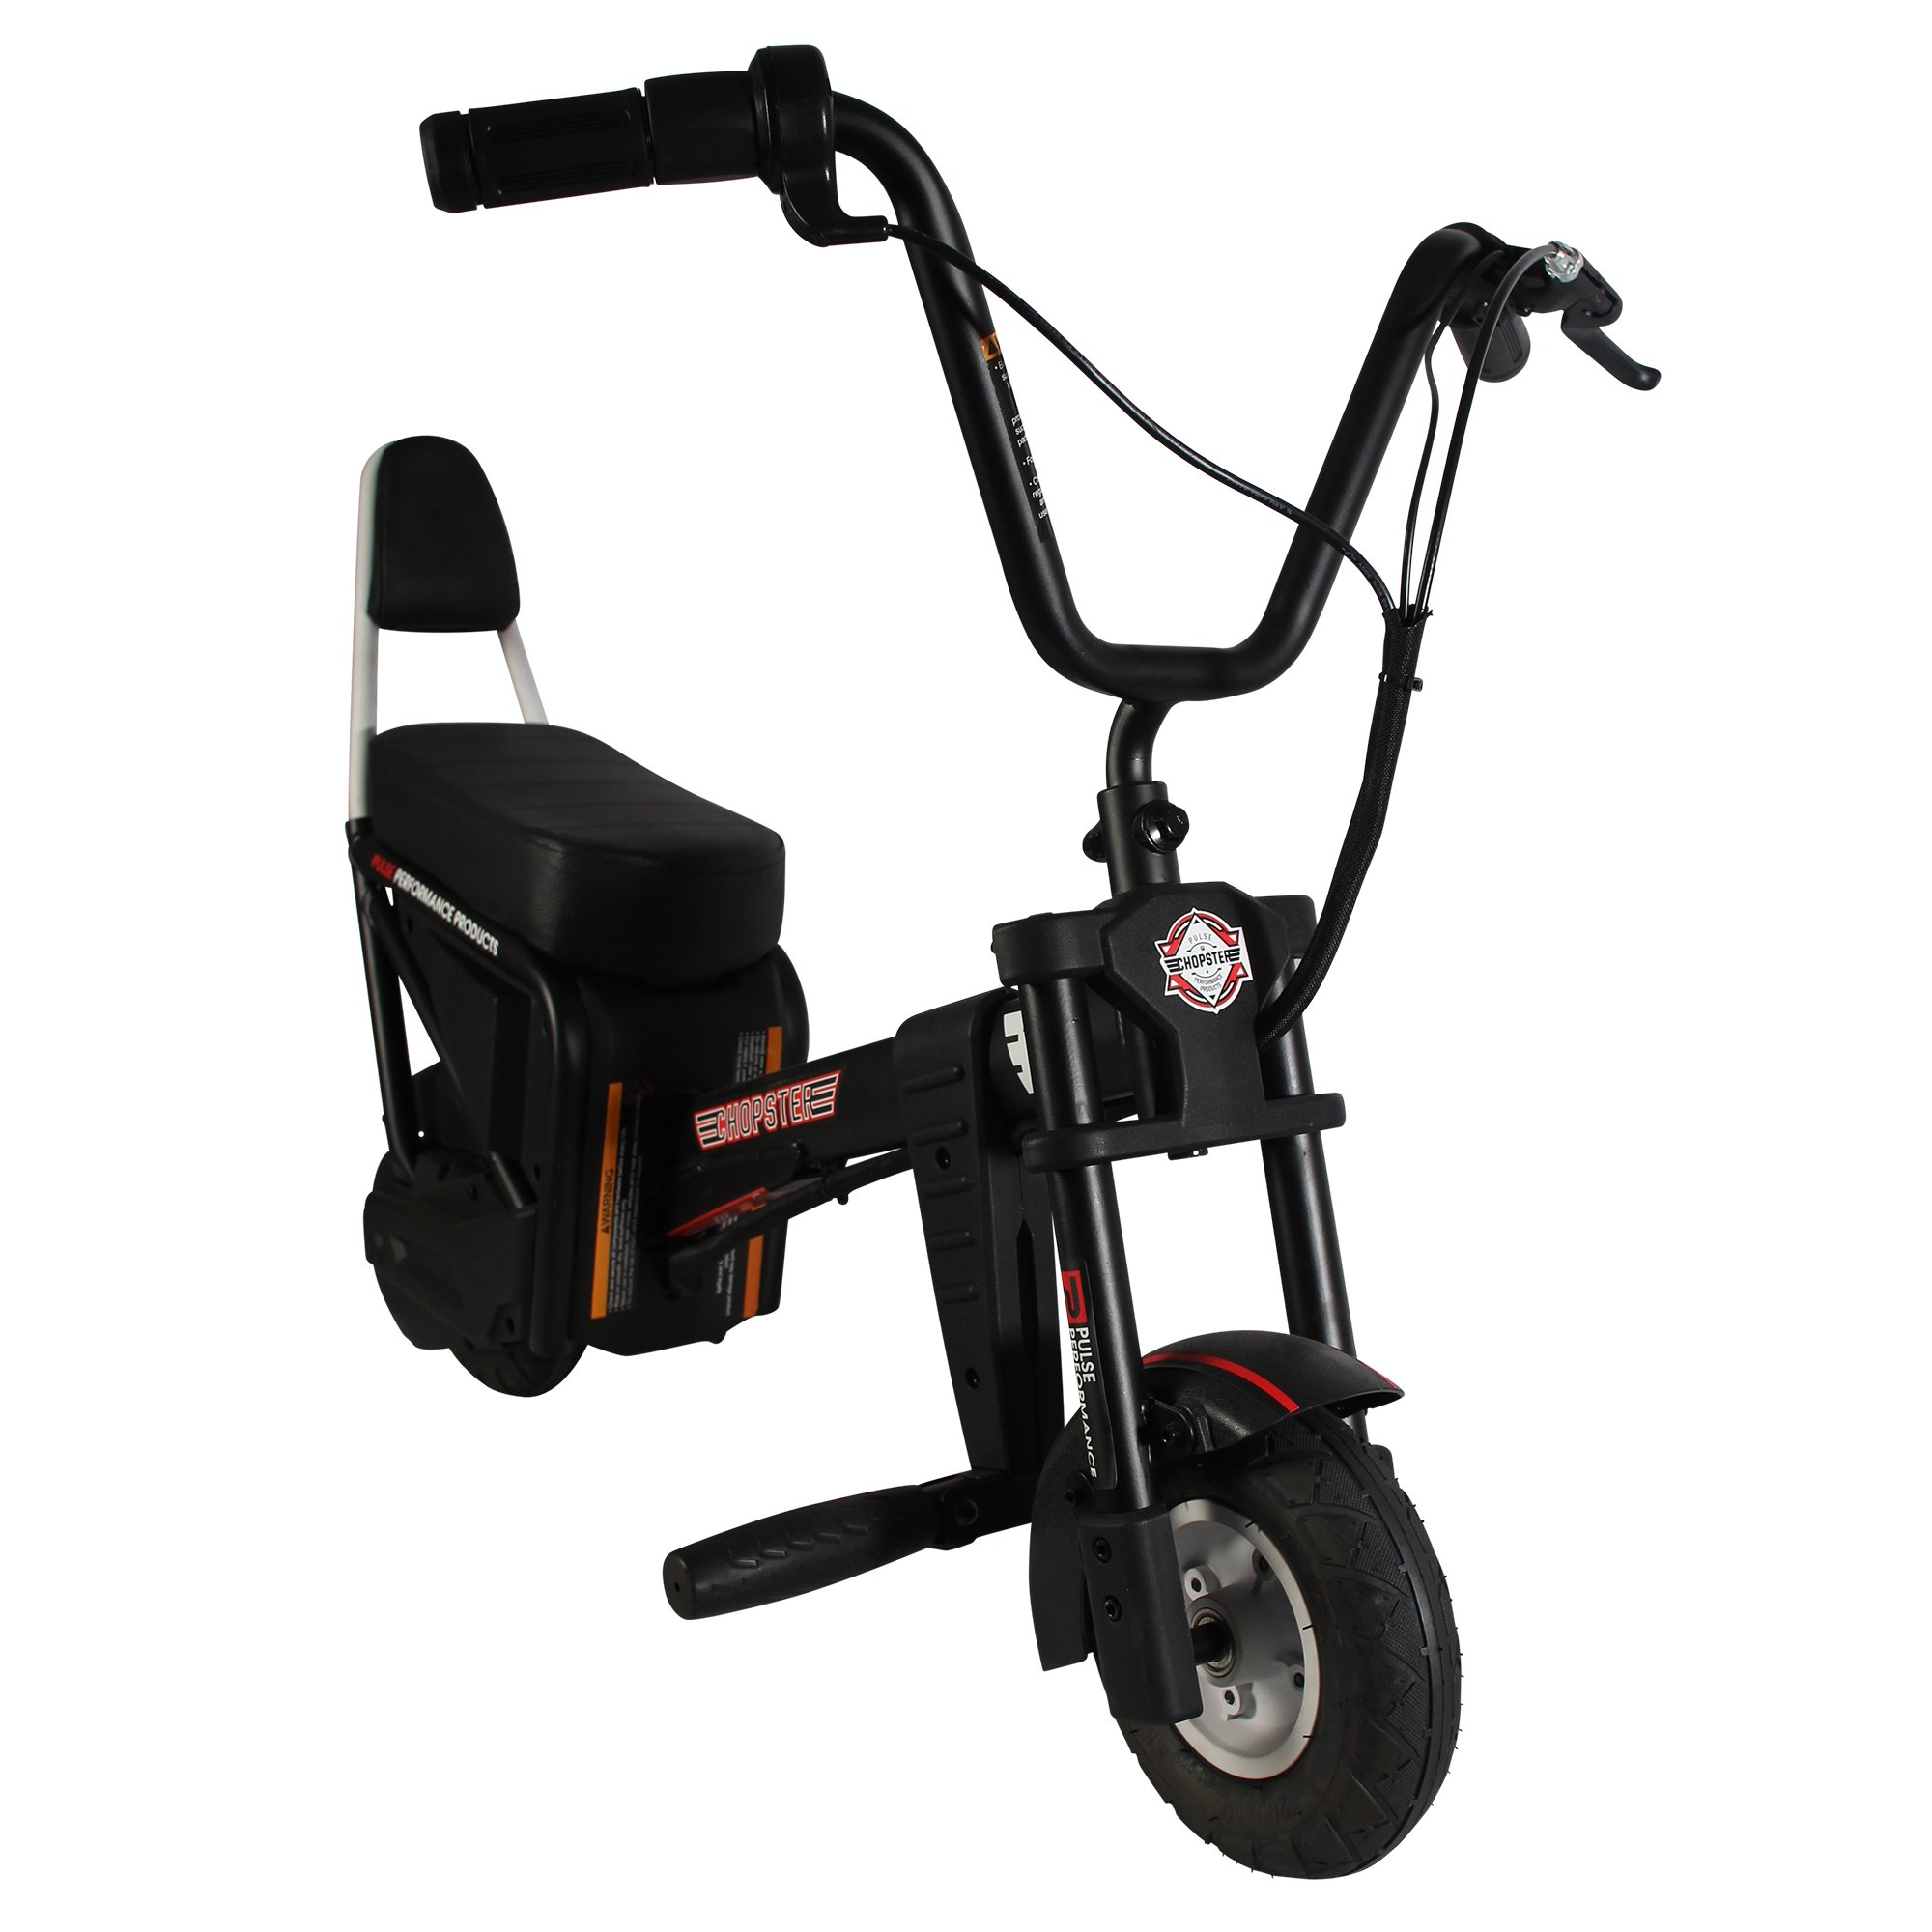 Pulse Performance Products Chopster E-Motorcycle - 24 Volt Electric Ride On Bike for Kids - Black by Pulse Performance Products